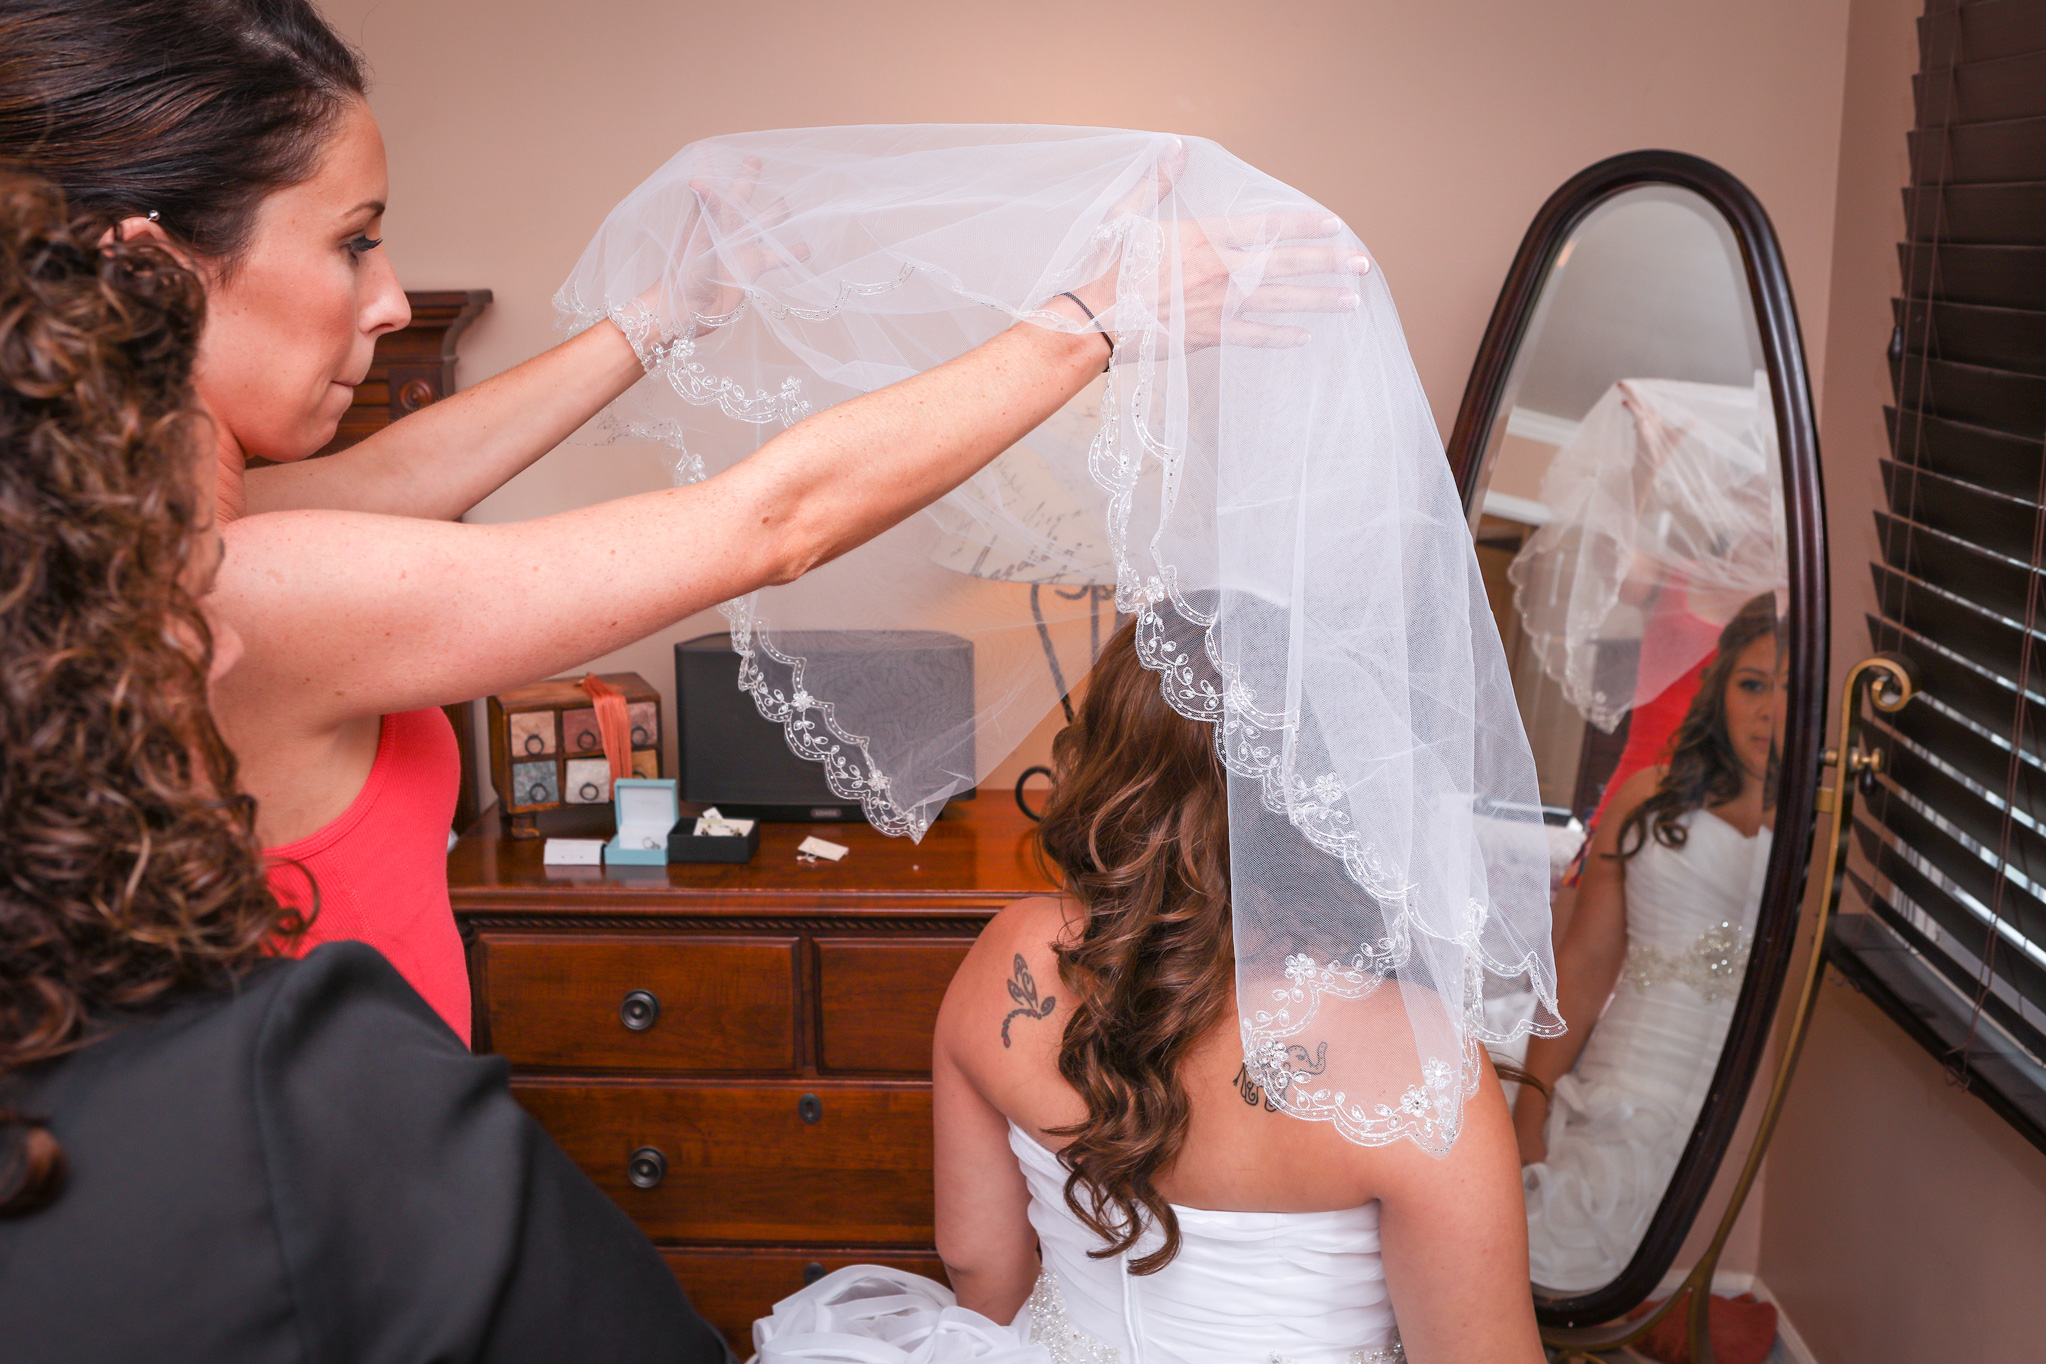 annie_matthew_wedding_cary_illinois_jeff_gathman_photography_6.jpg